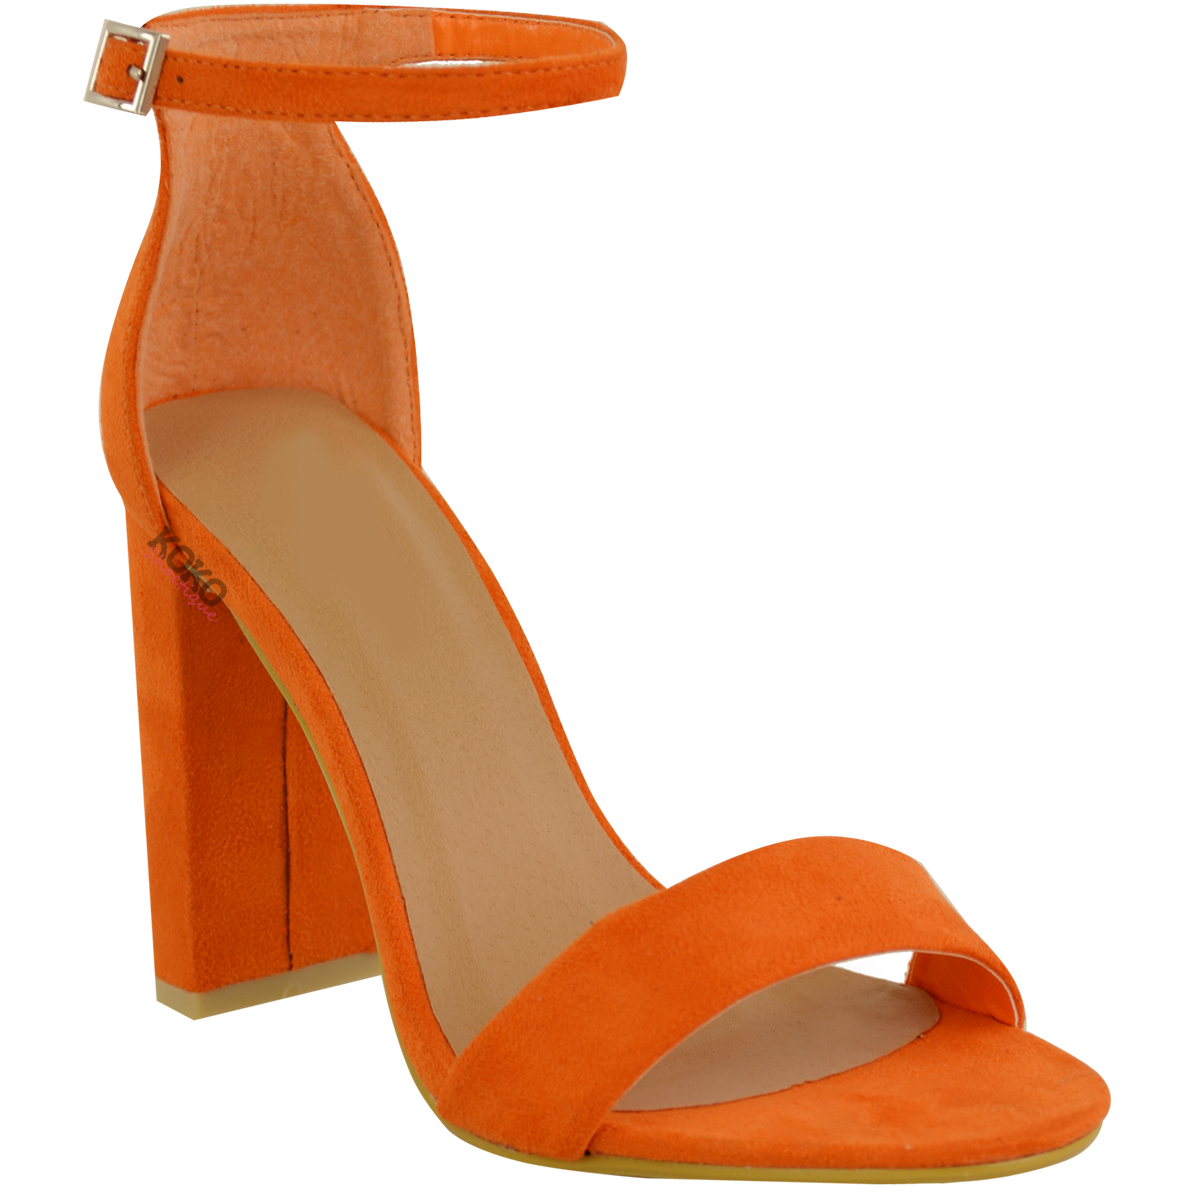 Womens-Ladies-Block-High-Heels-Ankle-Strap-Sexy-Open-Toe-Sandals-Shoes-Size-New miniatuur 33